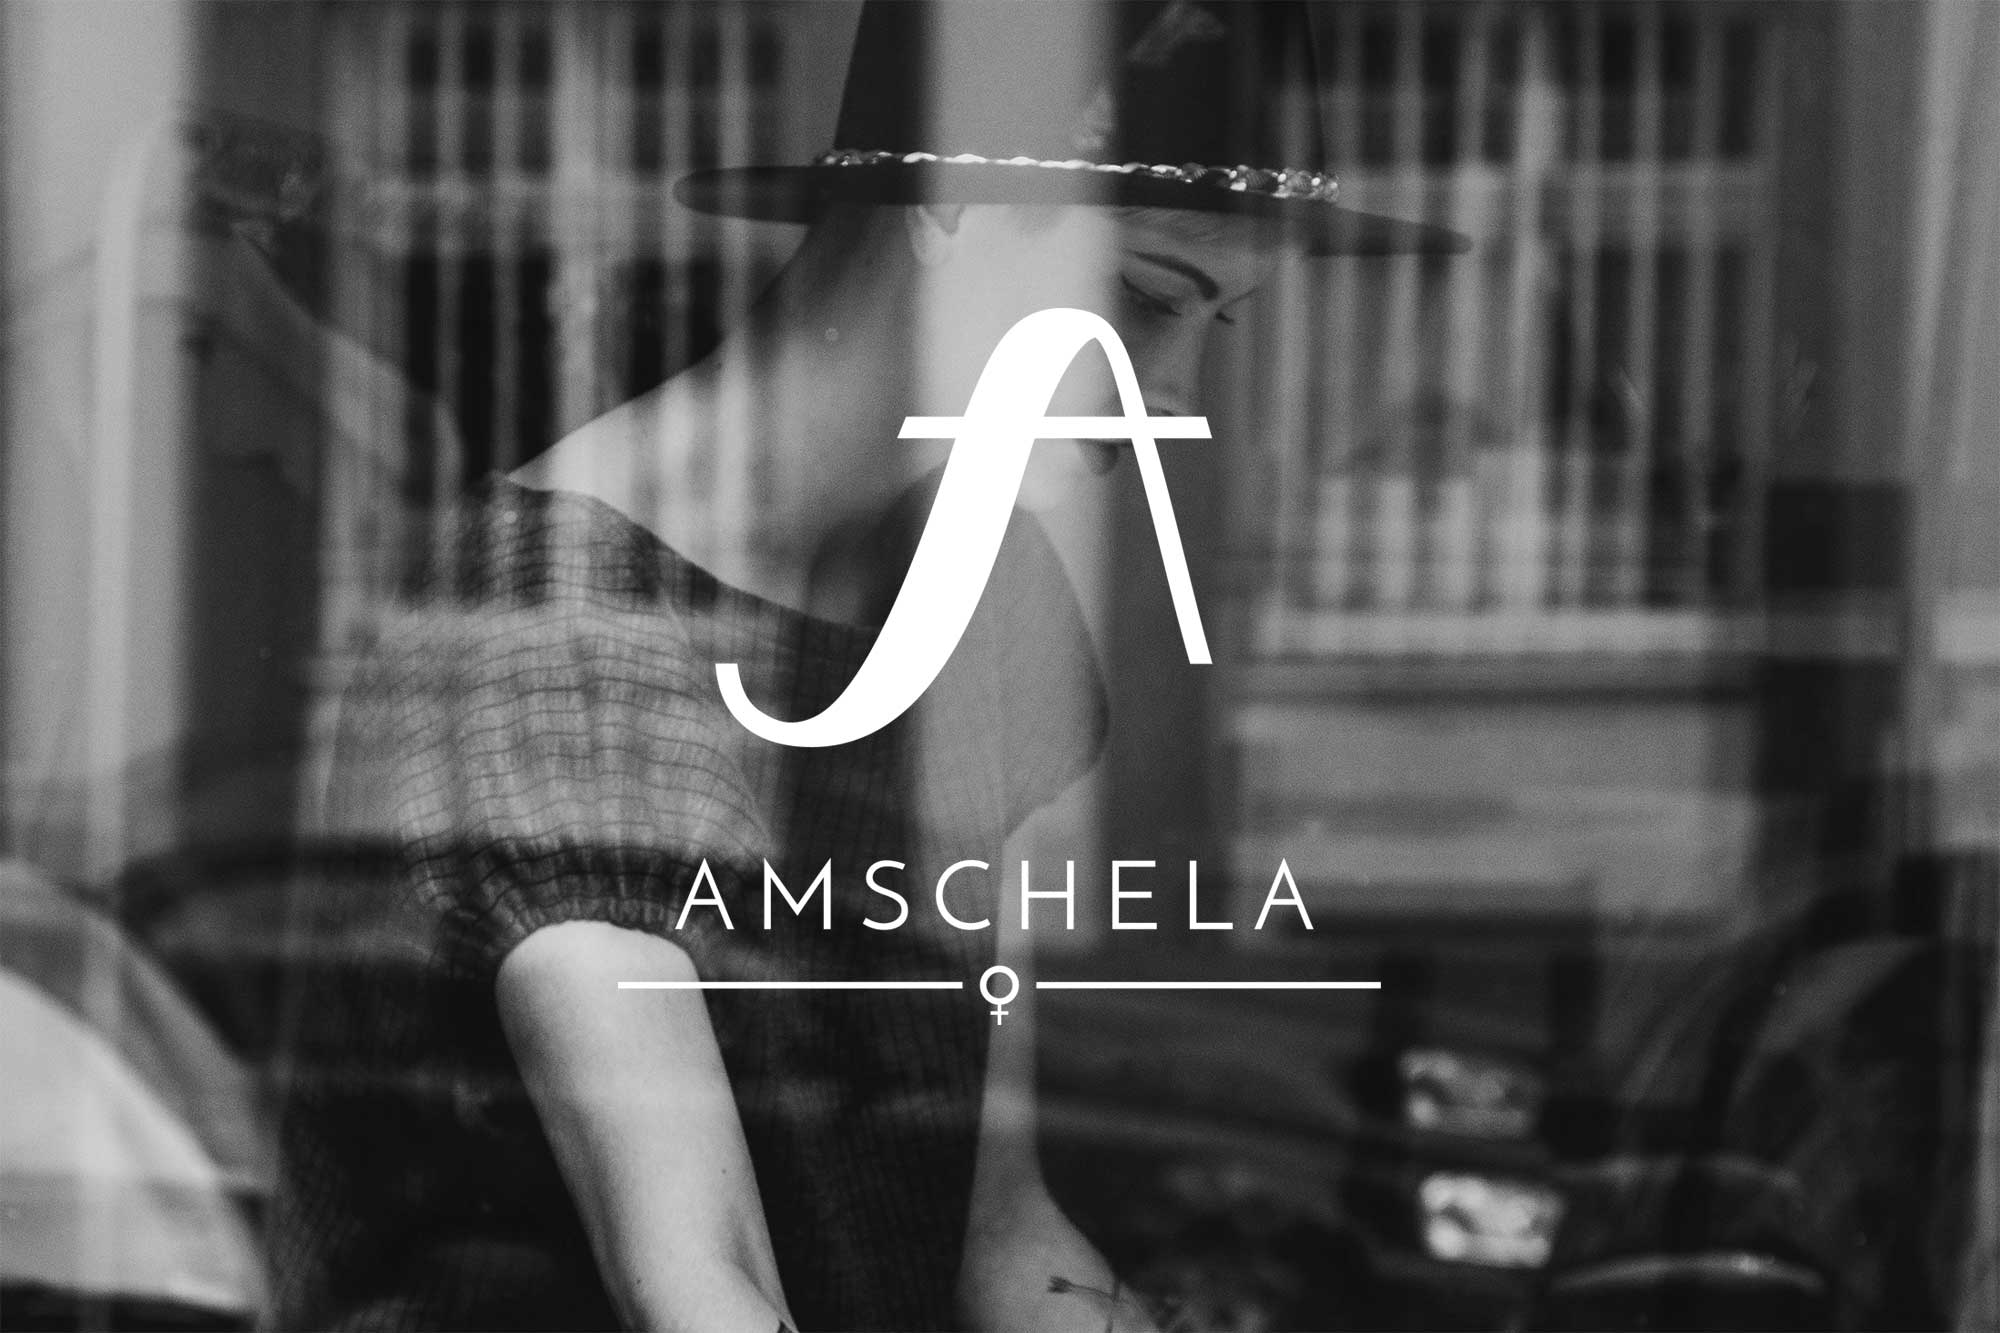 Amschela logo on background